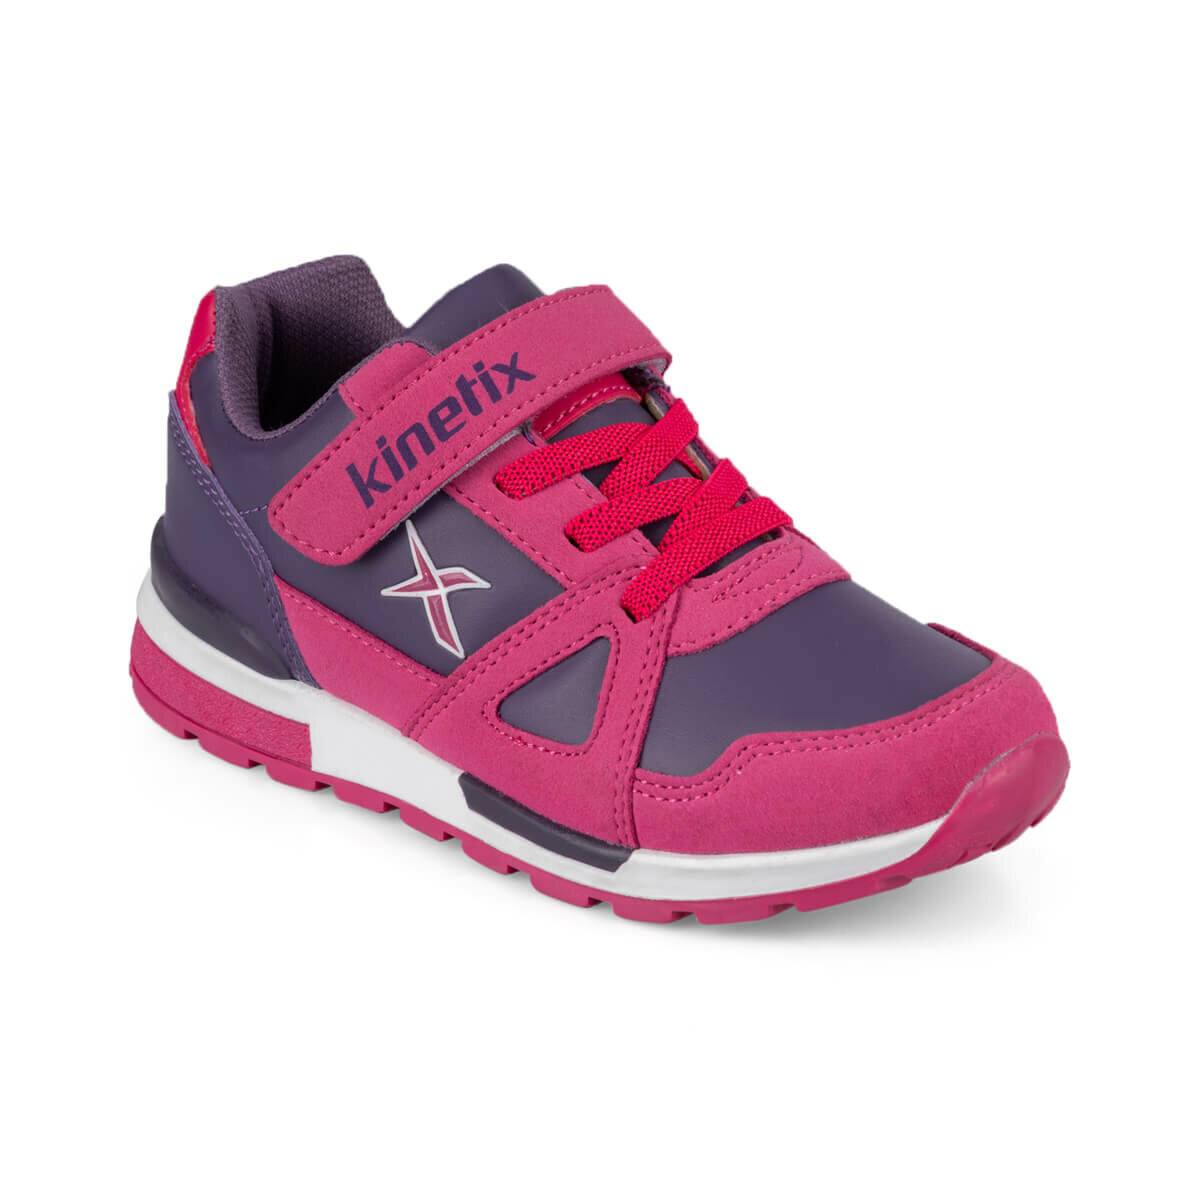 FLO RIVERO PU 9PR Purple Female Child Sneaker Shoes KINETIX